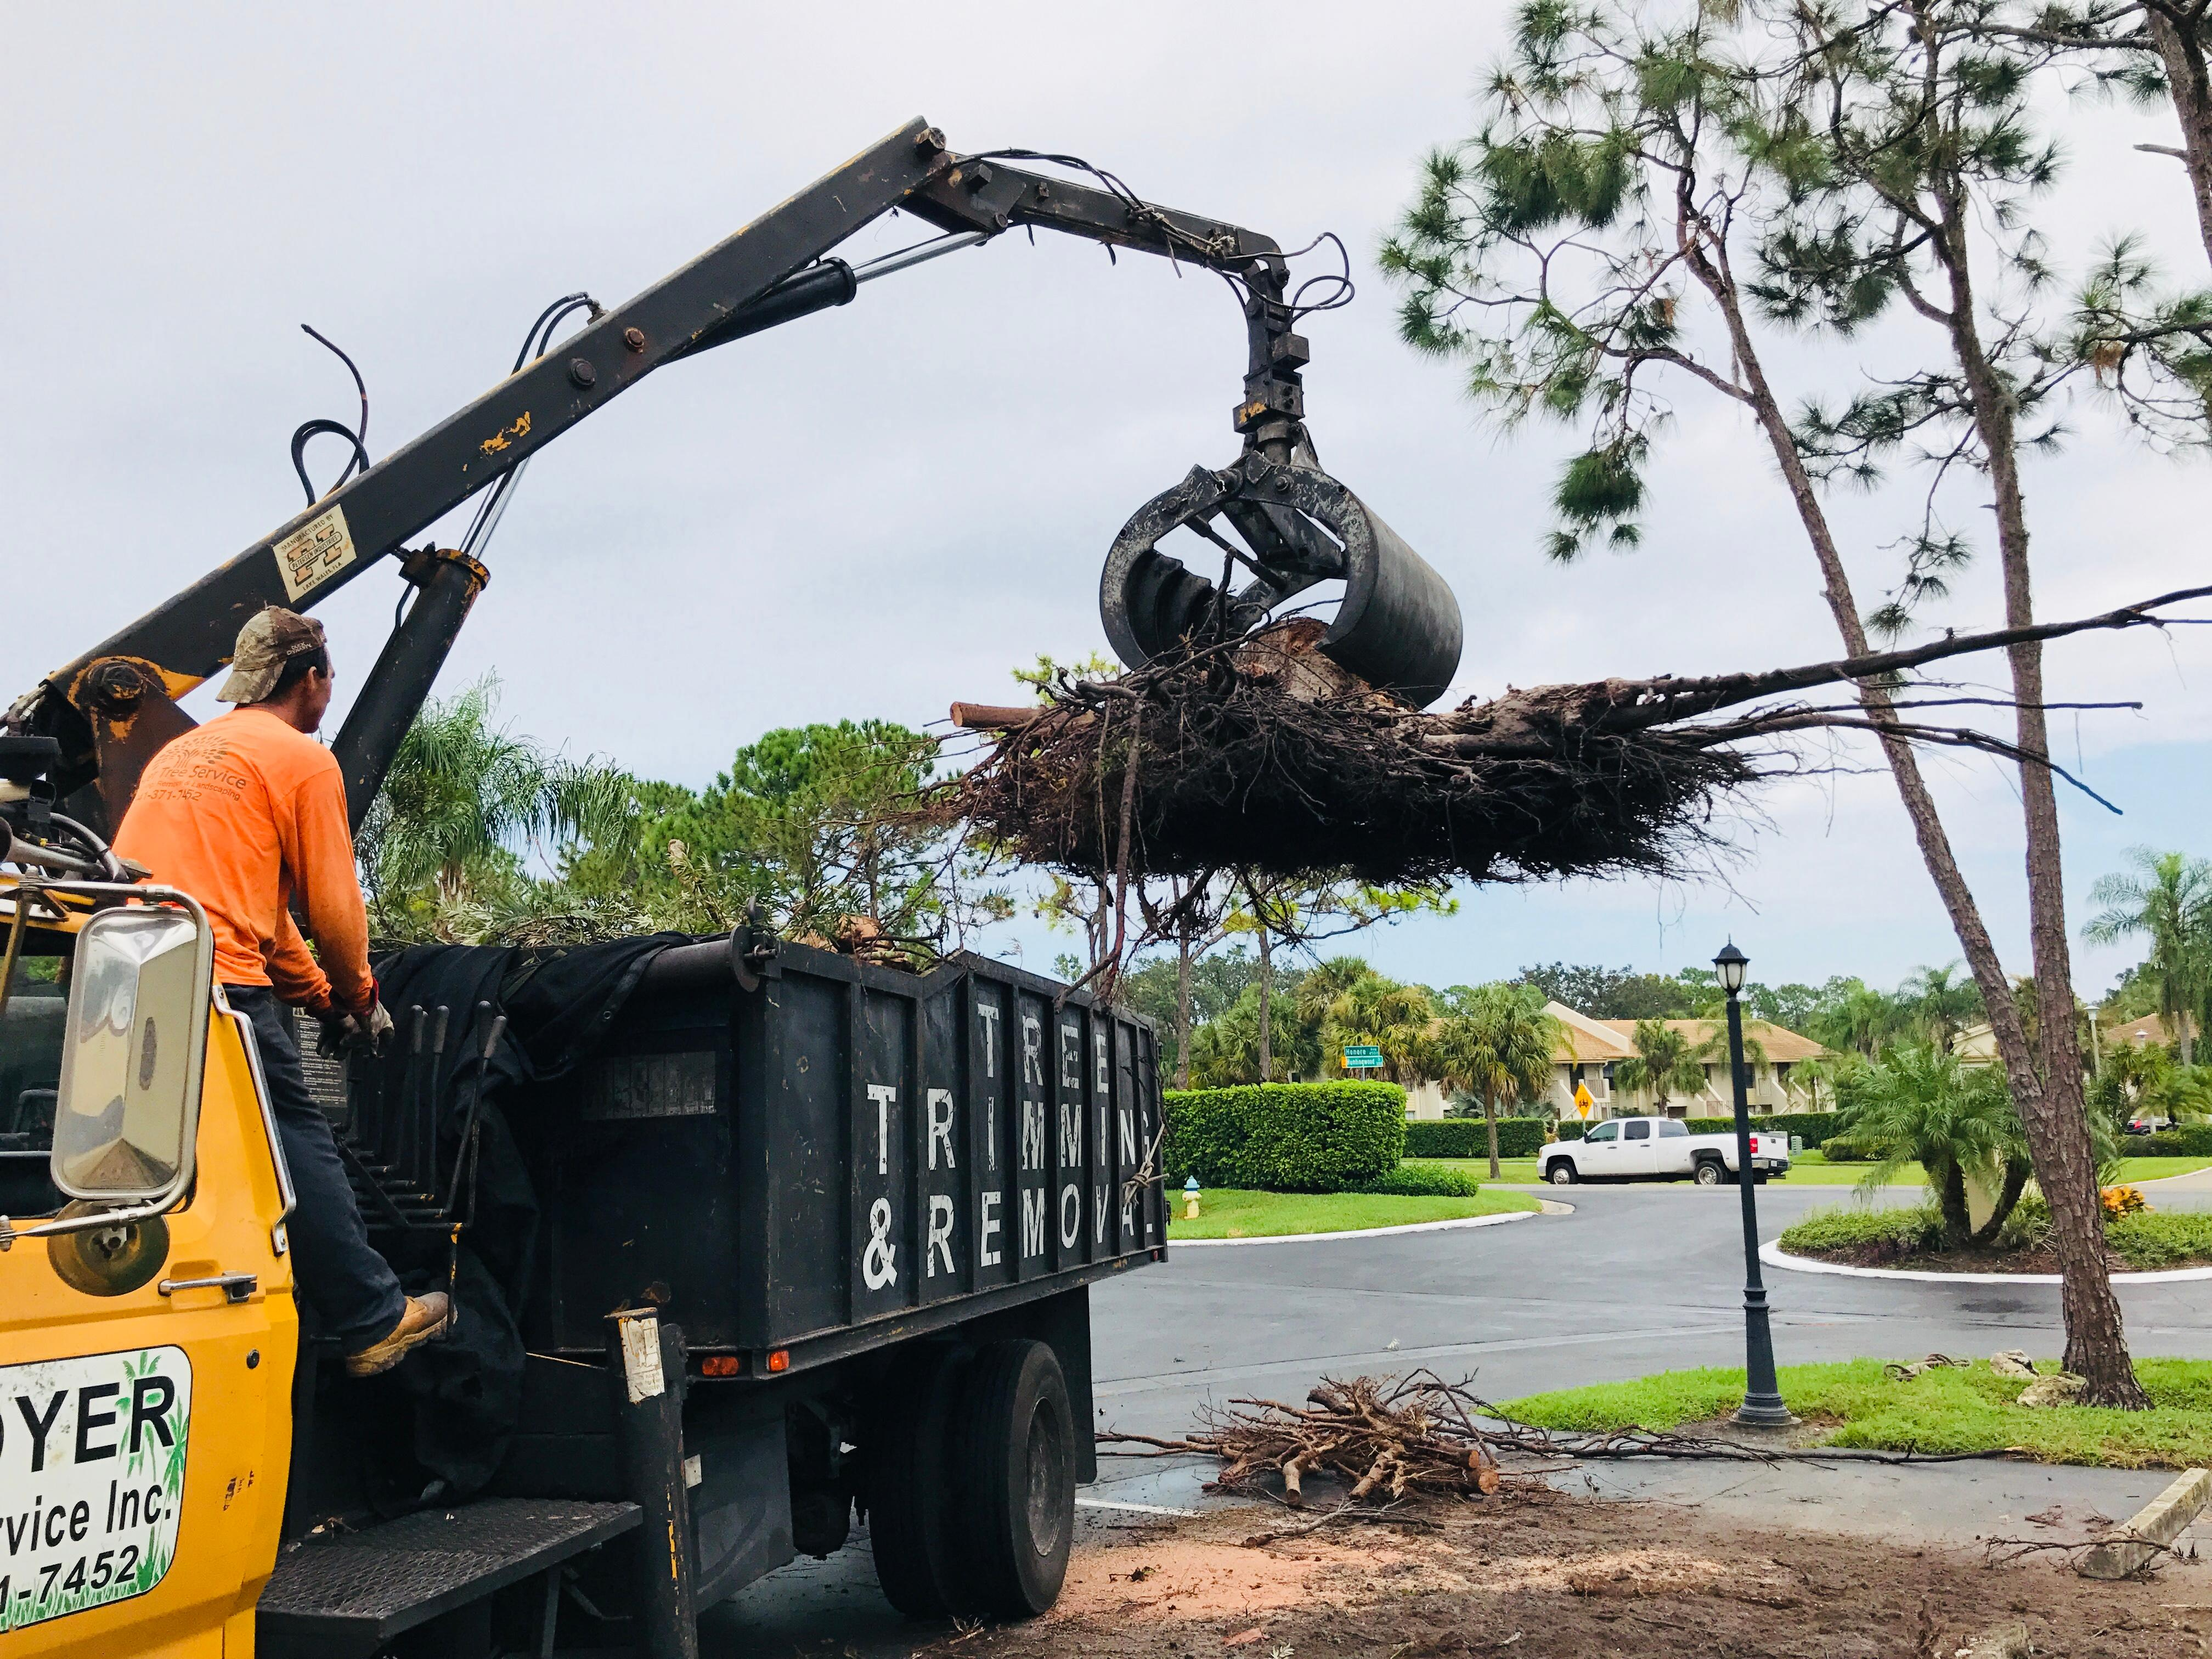 Troyer Tree Service image 2